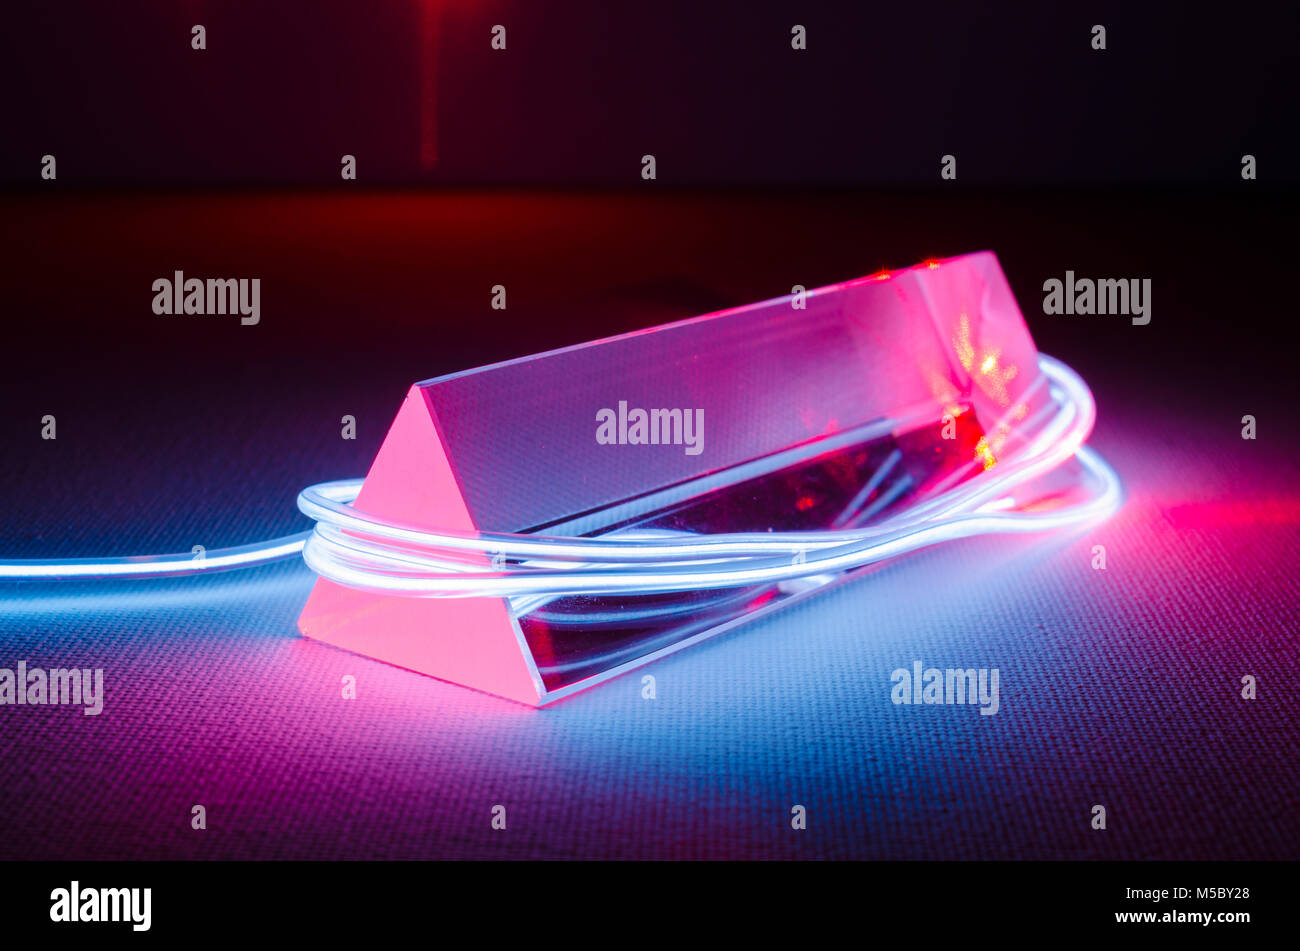 A Studio Still-life Photograph of a Triangular Glass Prism with Abstract Neon Lighting in Blue-Grey, and Red Laser - Stock Image